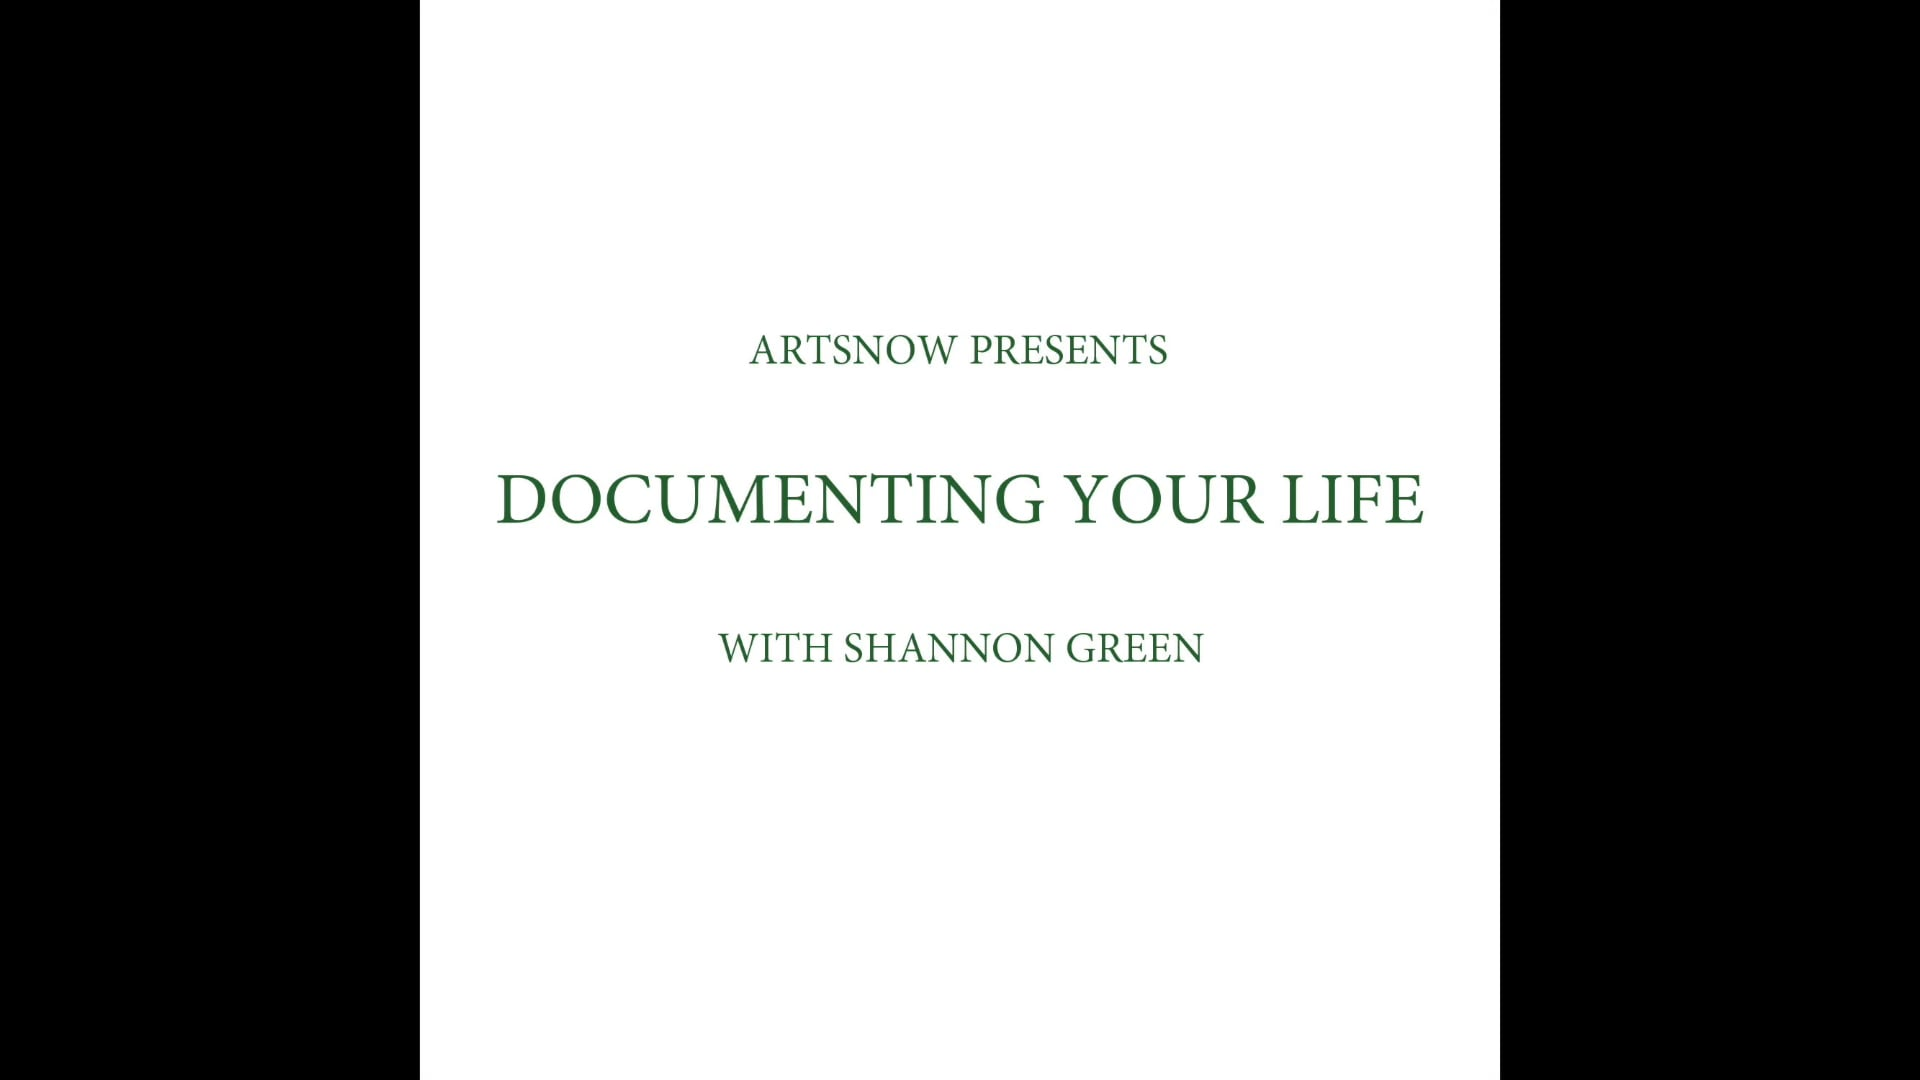 New Digital Ideas: Documenting Your Life